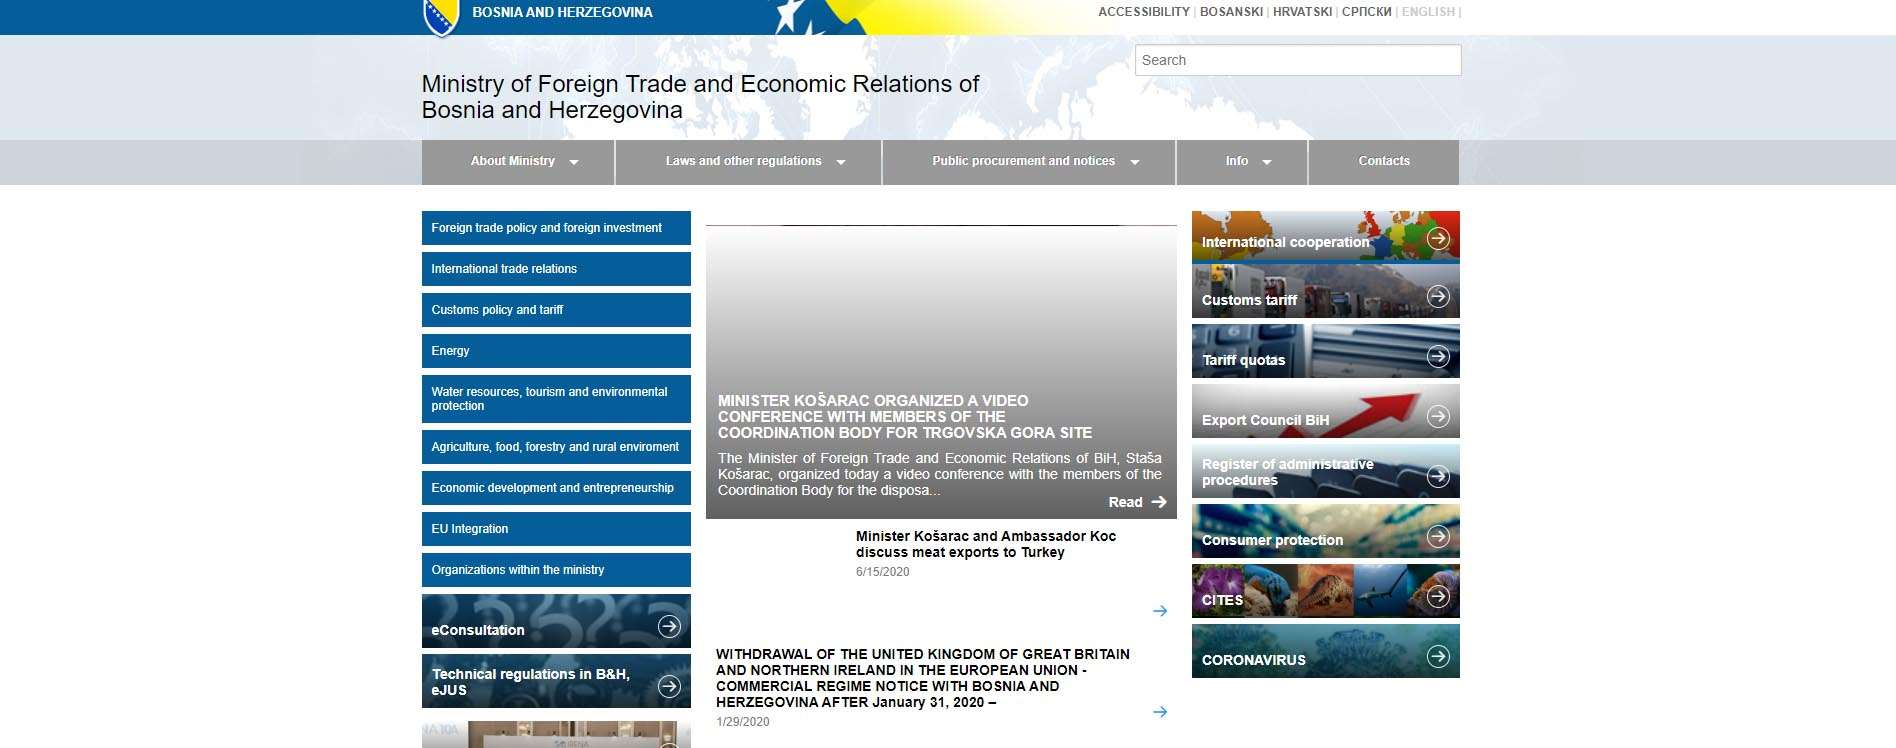 Ministry of Foreign Trade and Economic Relations of Bosnia and Herzegovina